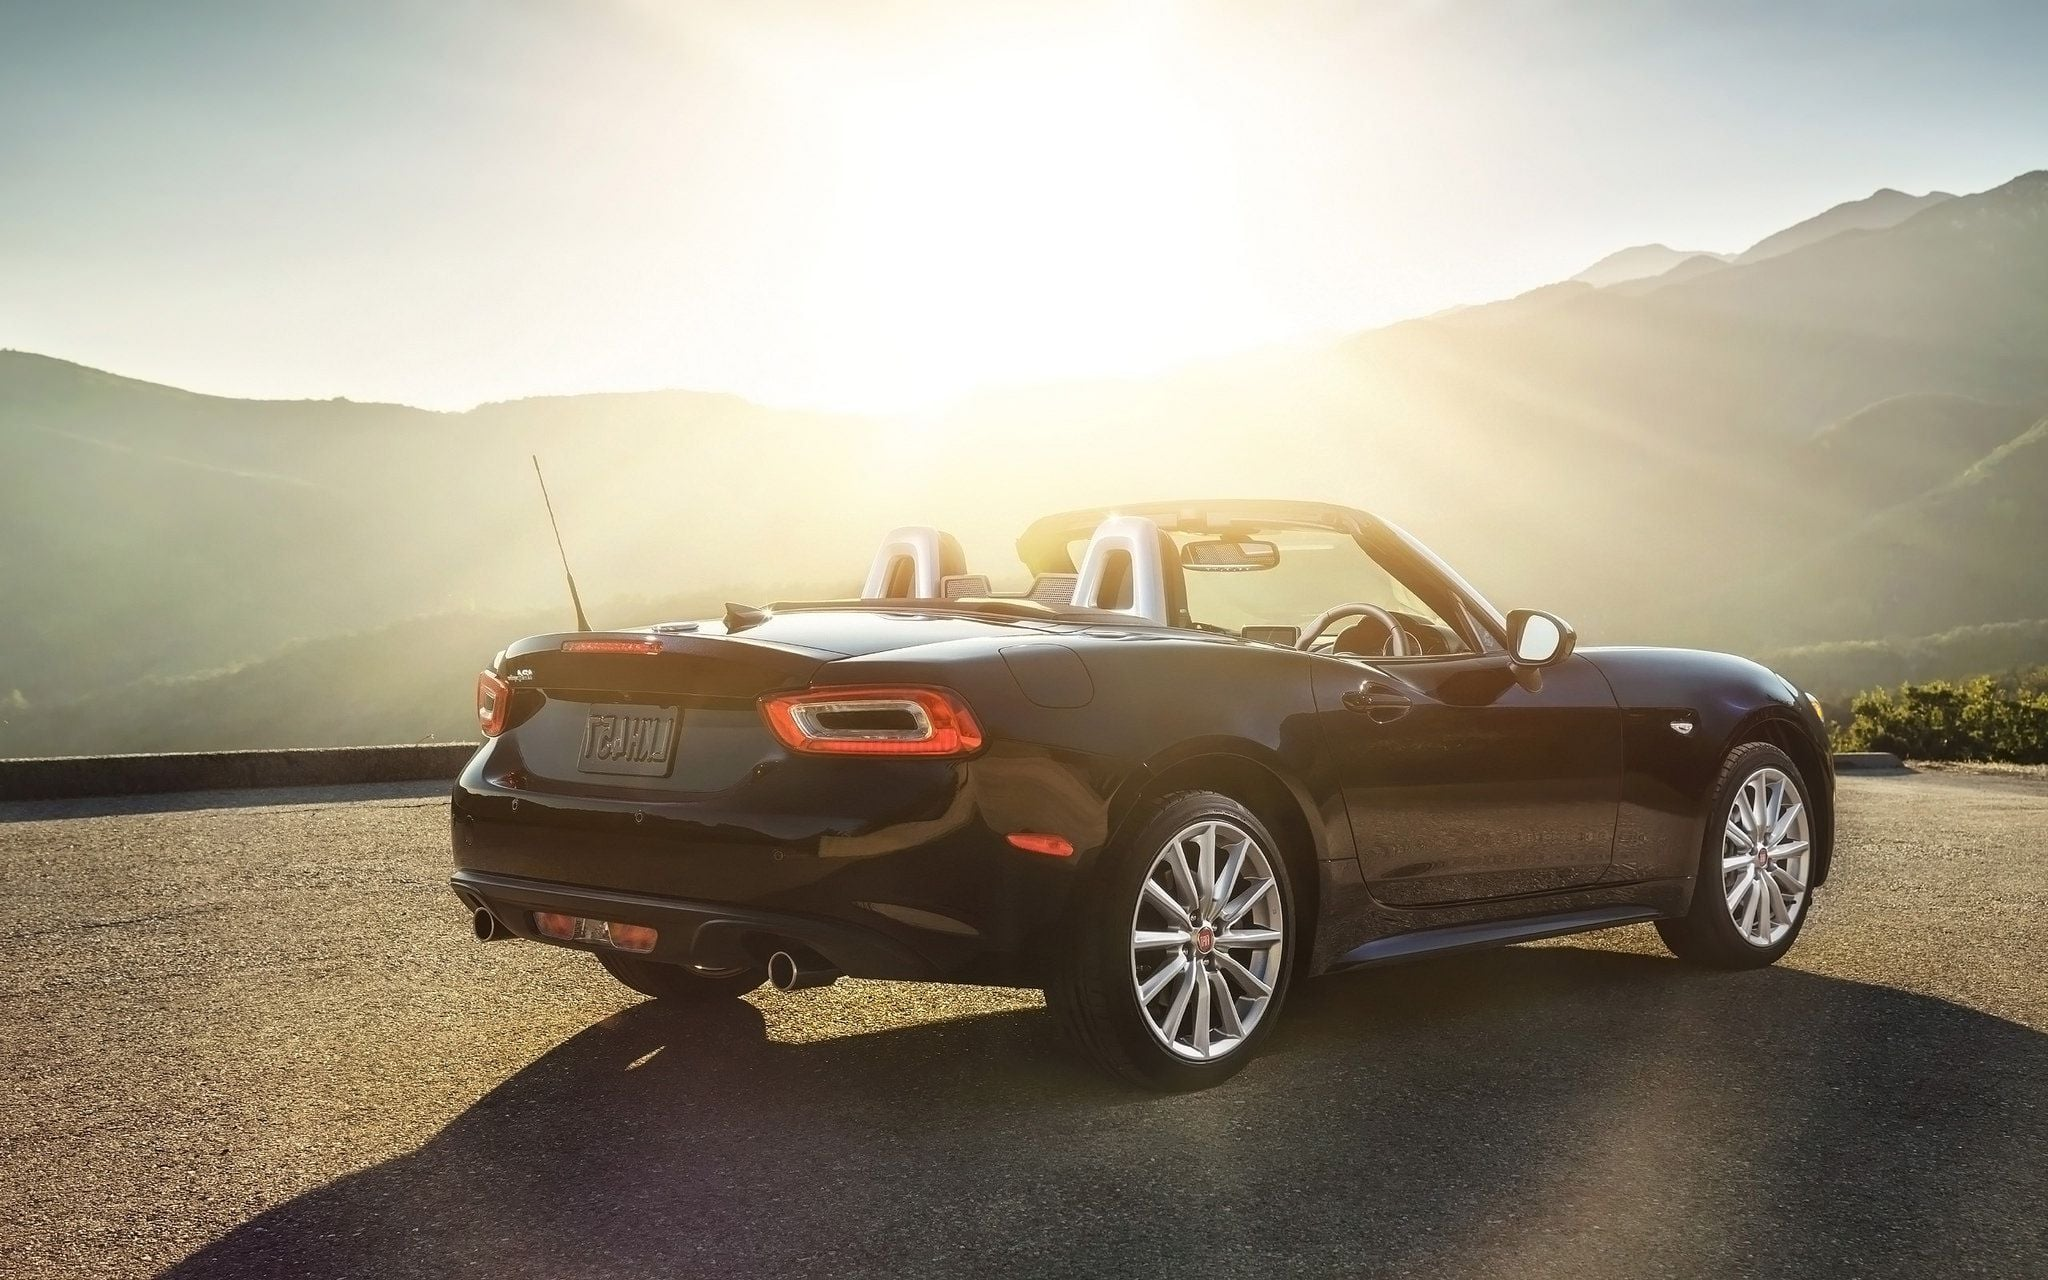 2017 Fiat 124 Spider sunset wallpaper 1080p